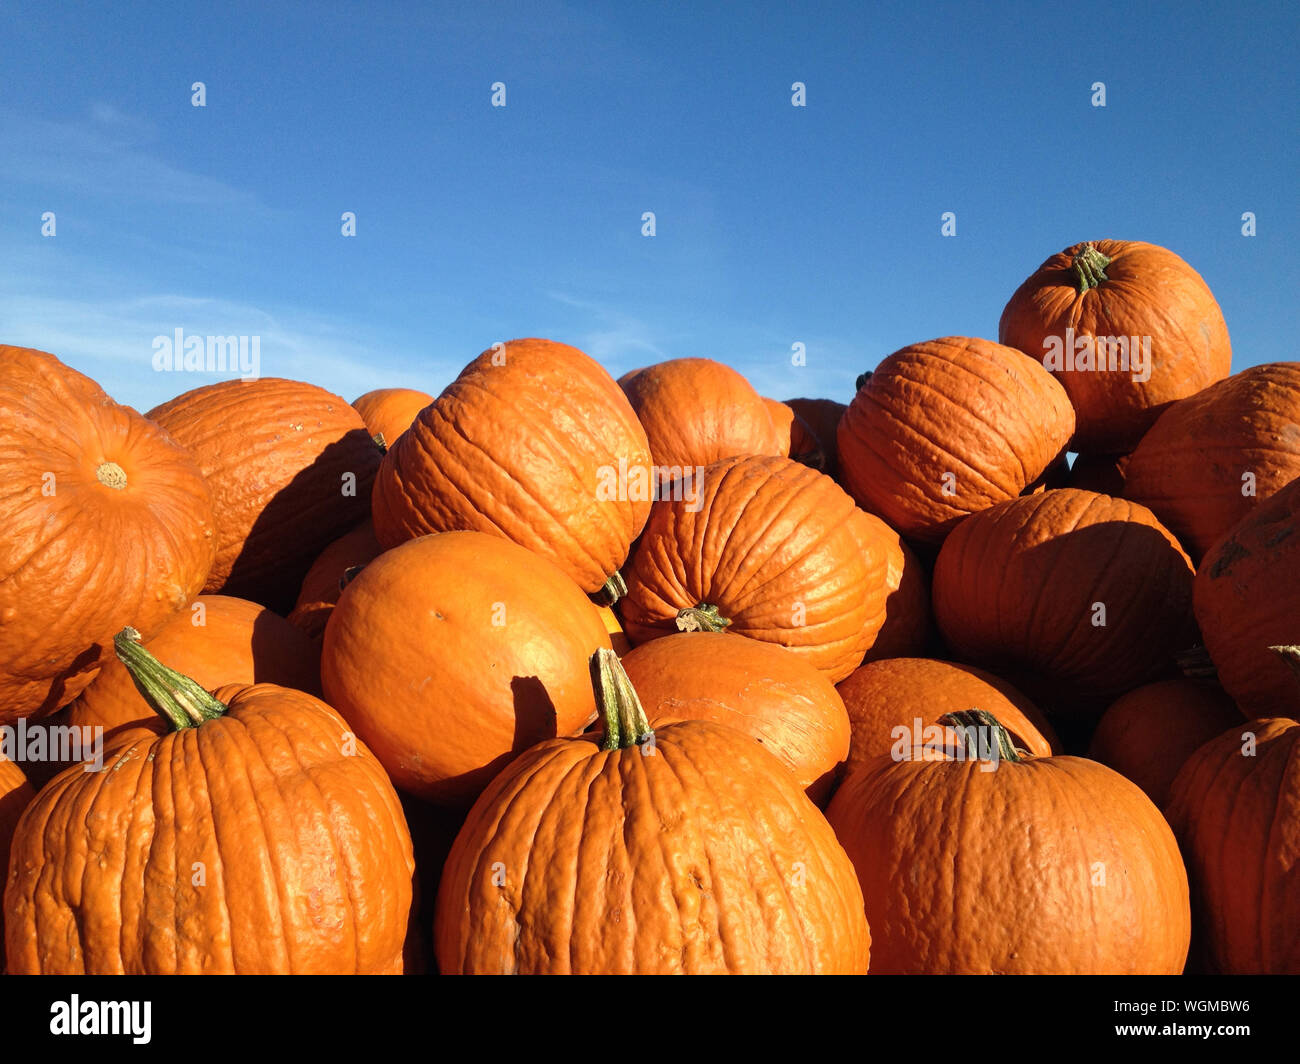 Stack Of Pumpkins Against Sky Stock Photo